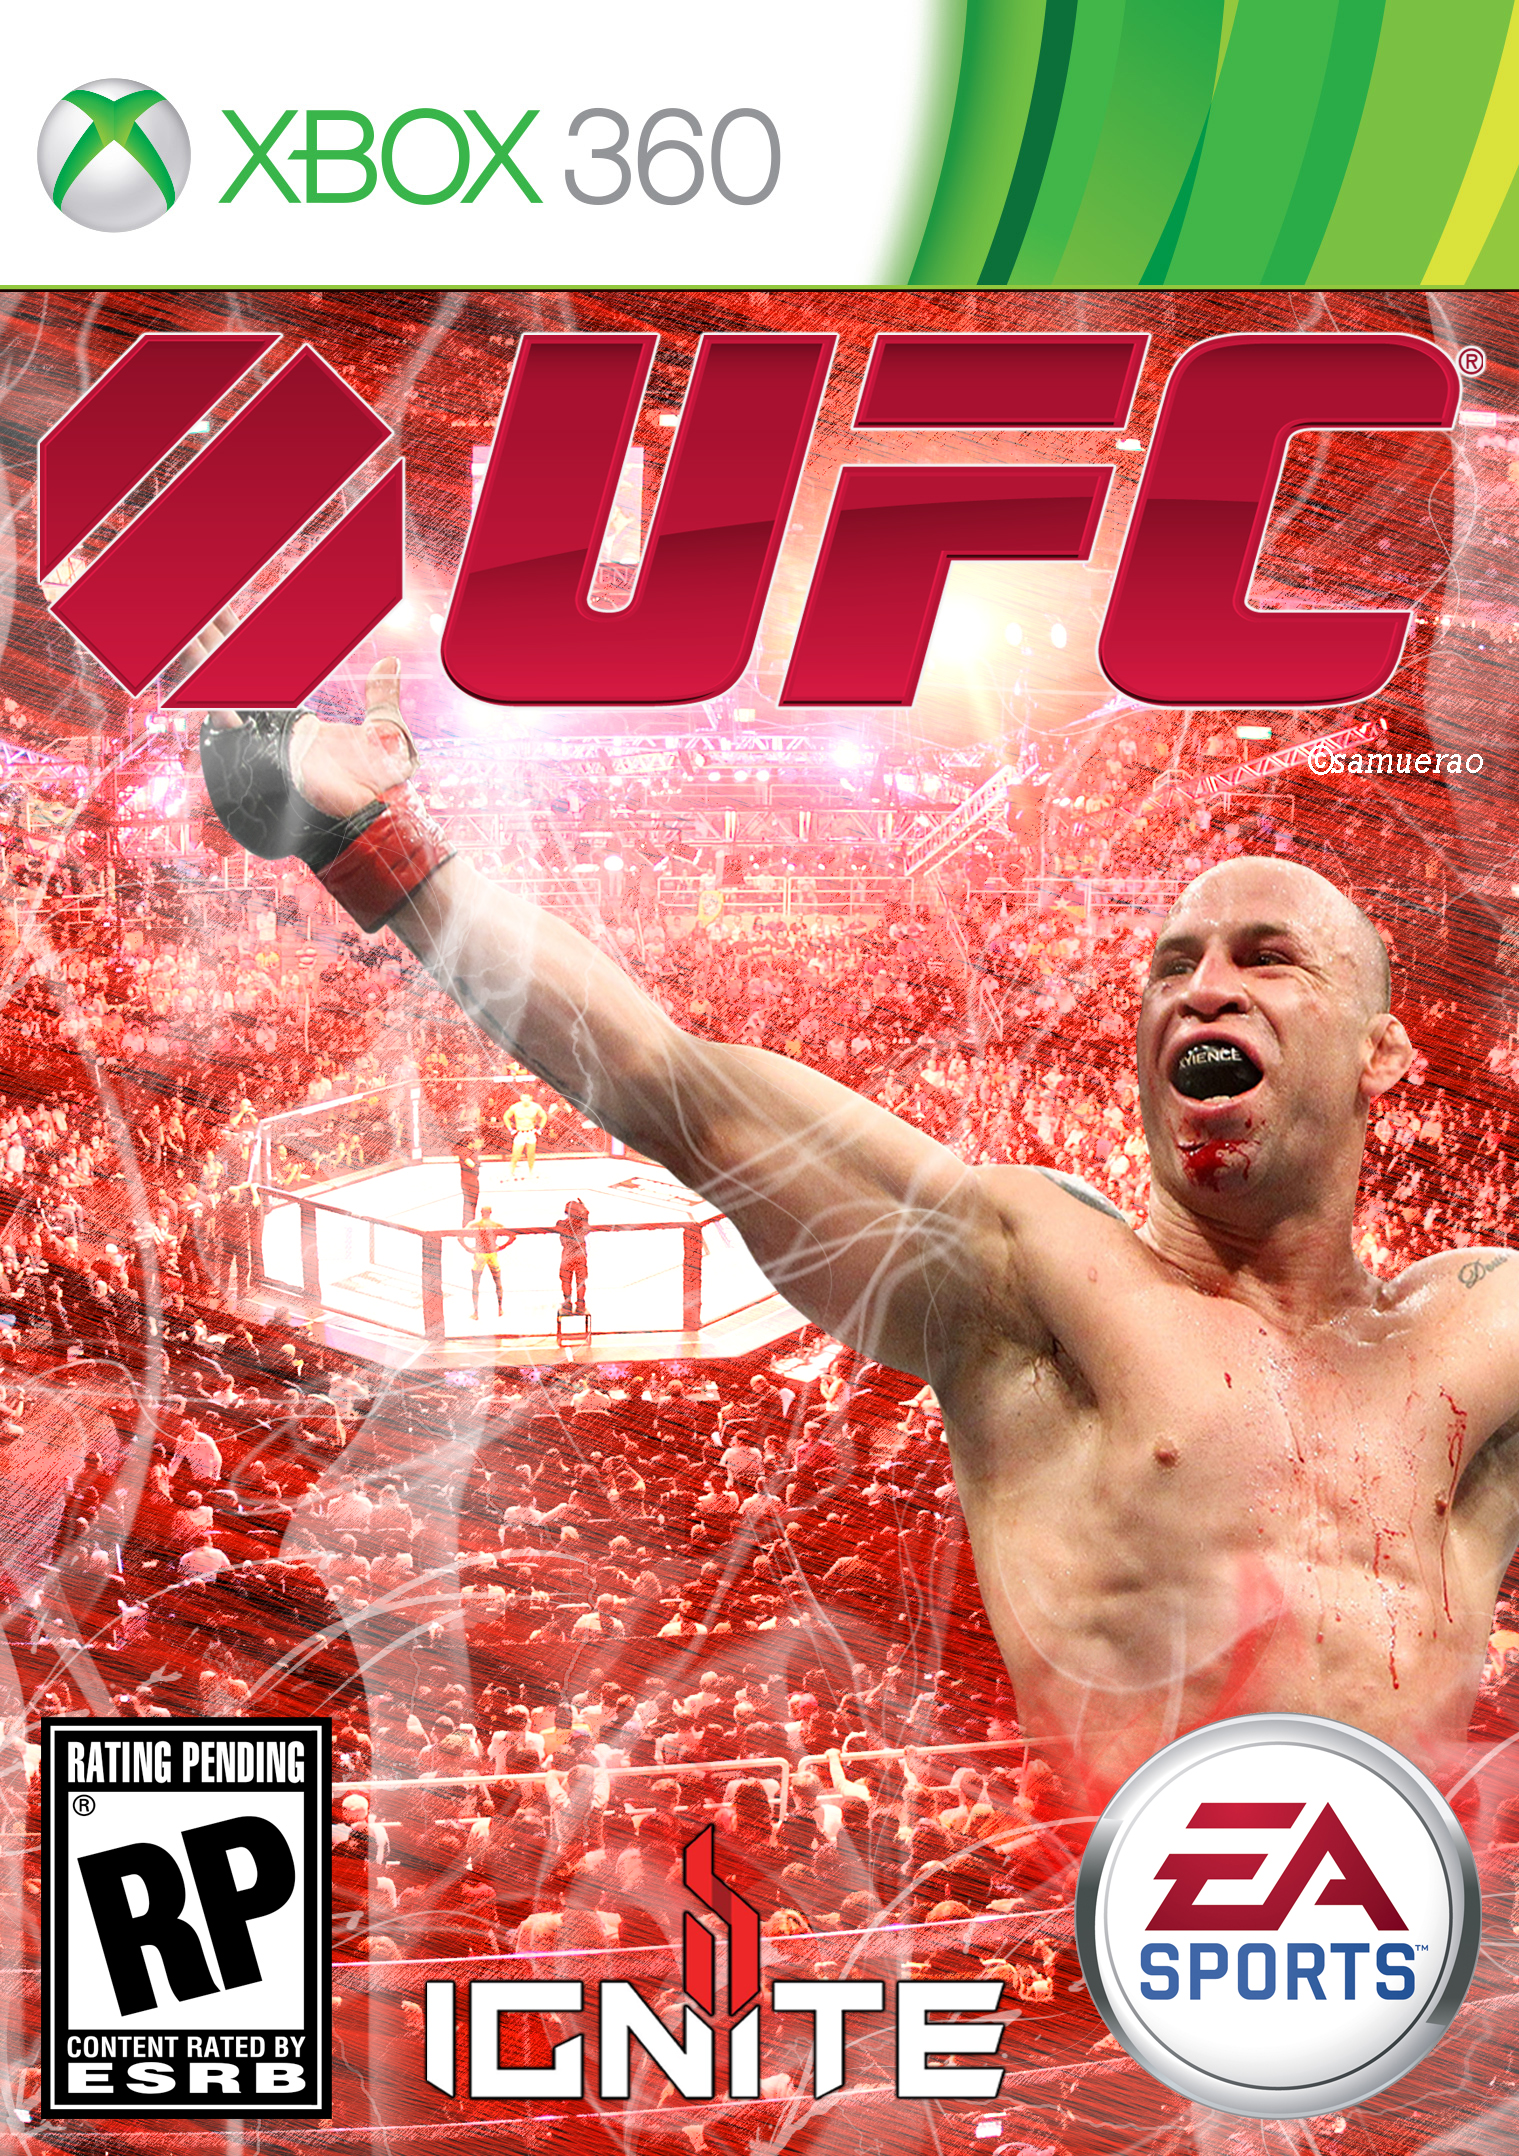 Ea Fuse Xbox 360 : Ea sports ufc cover xbox by samuerao on